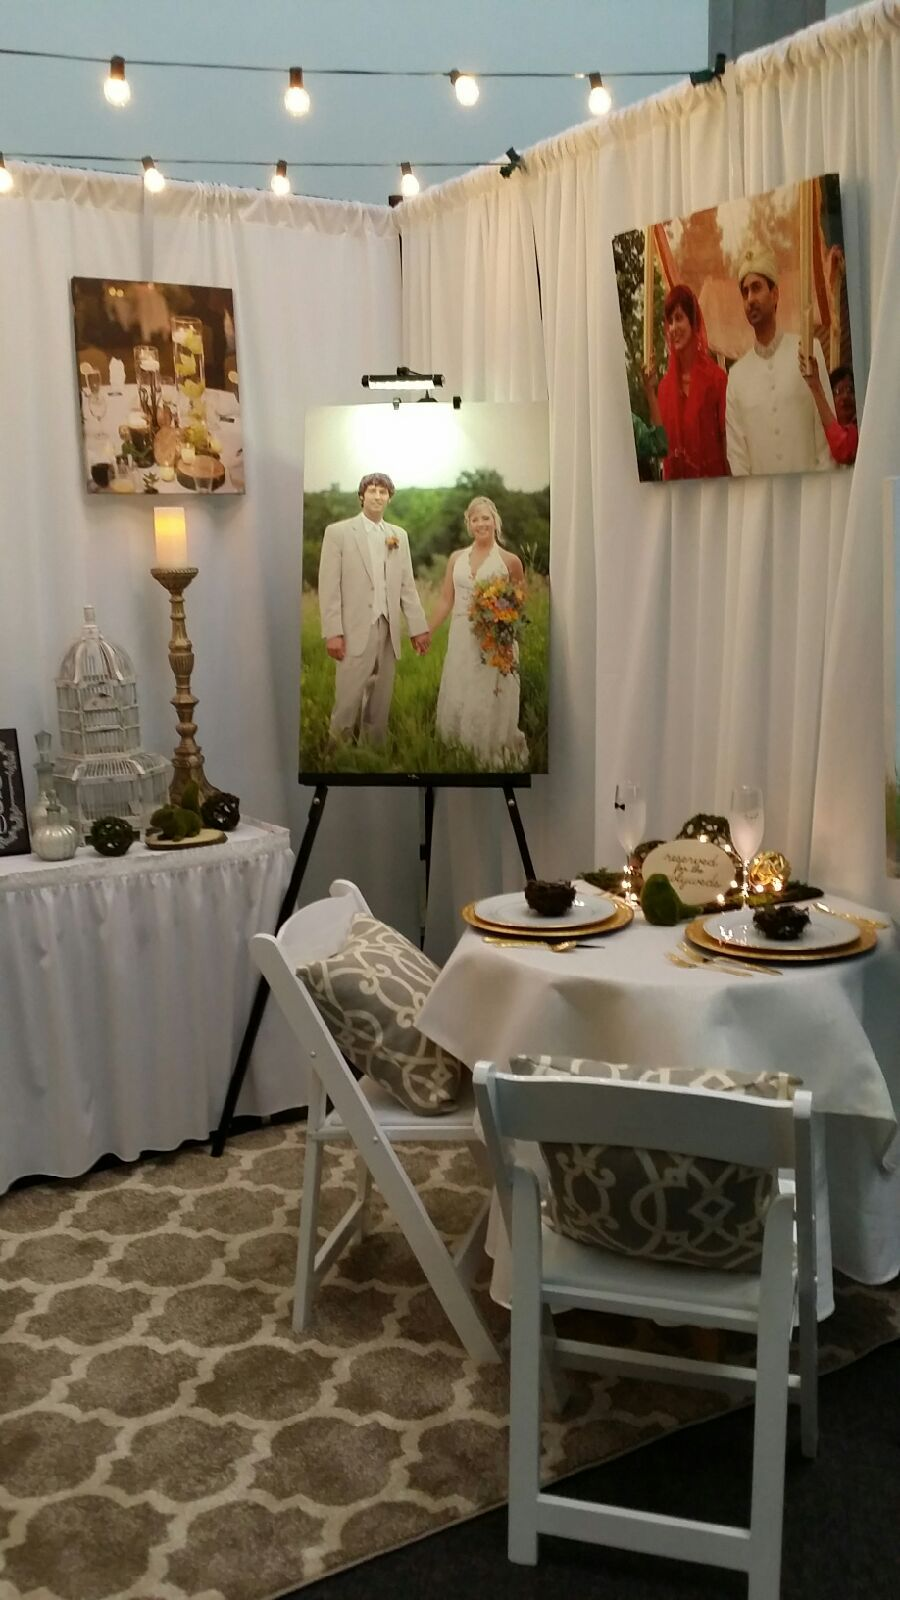 Bridal shows in illinois - Grand Bear Resort Banquets Conference Center Booth At The Illinois Valley Bridal Show Https